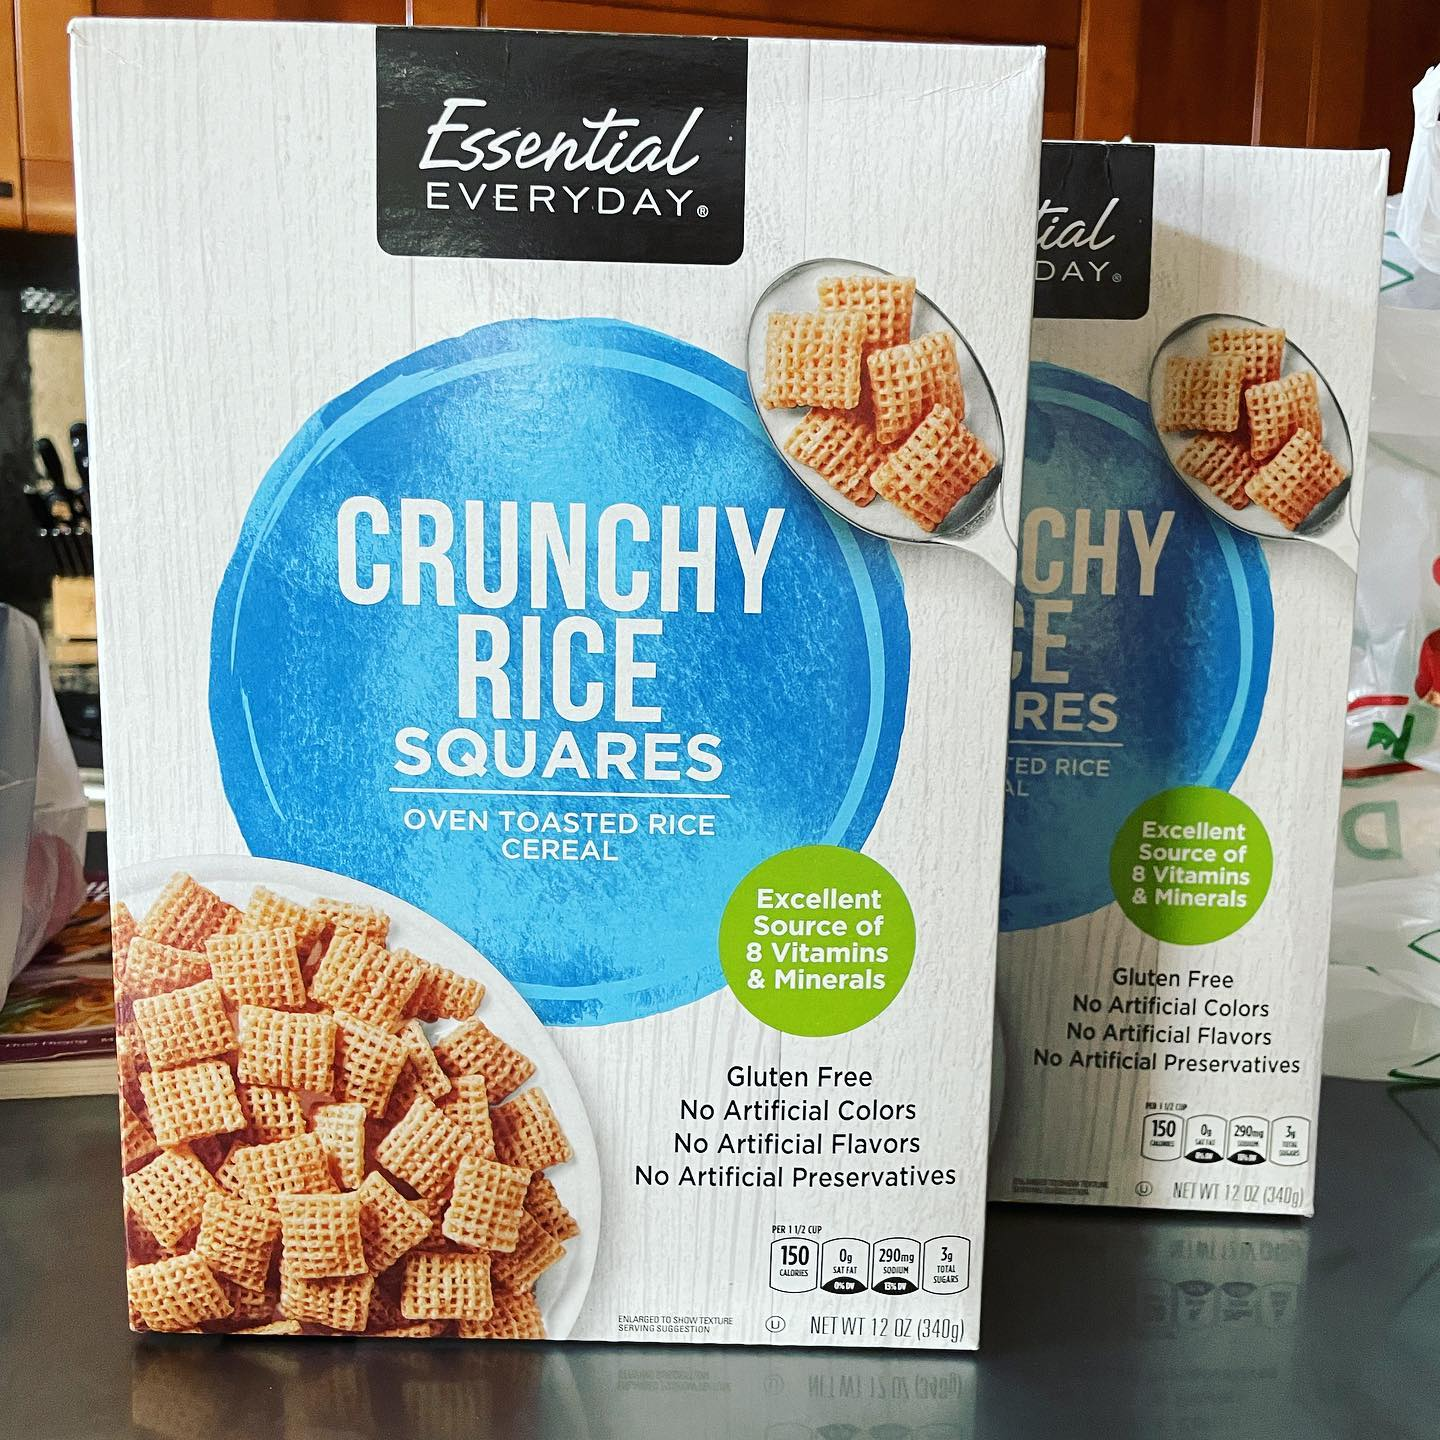 My absolute favorite snack slash ice cream topping remains Rice Chex and today I finally found something close enough here!